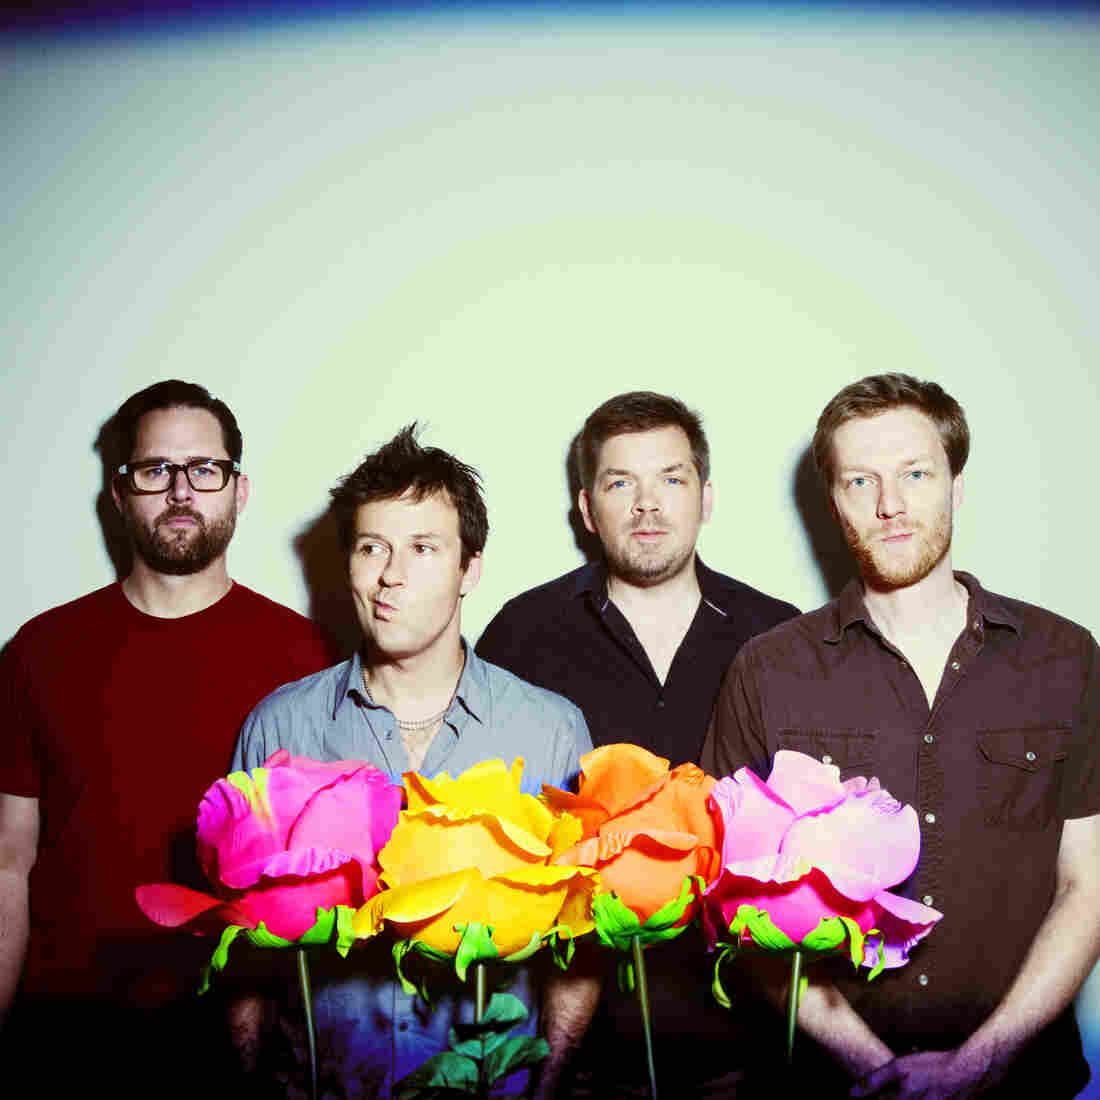 The Dismemberment Plan's new album, Uncanney Valley, comes out Oct. 15.